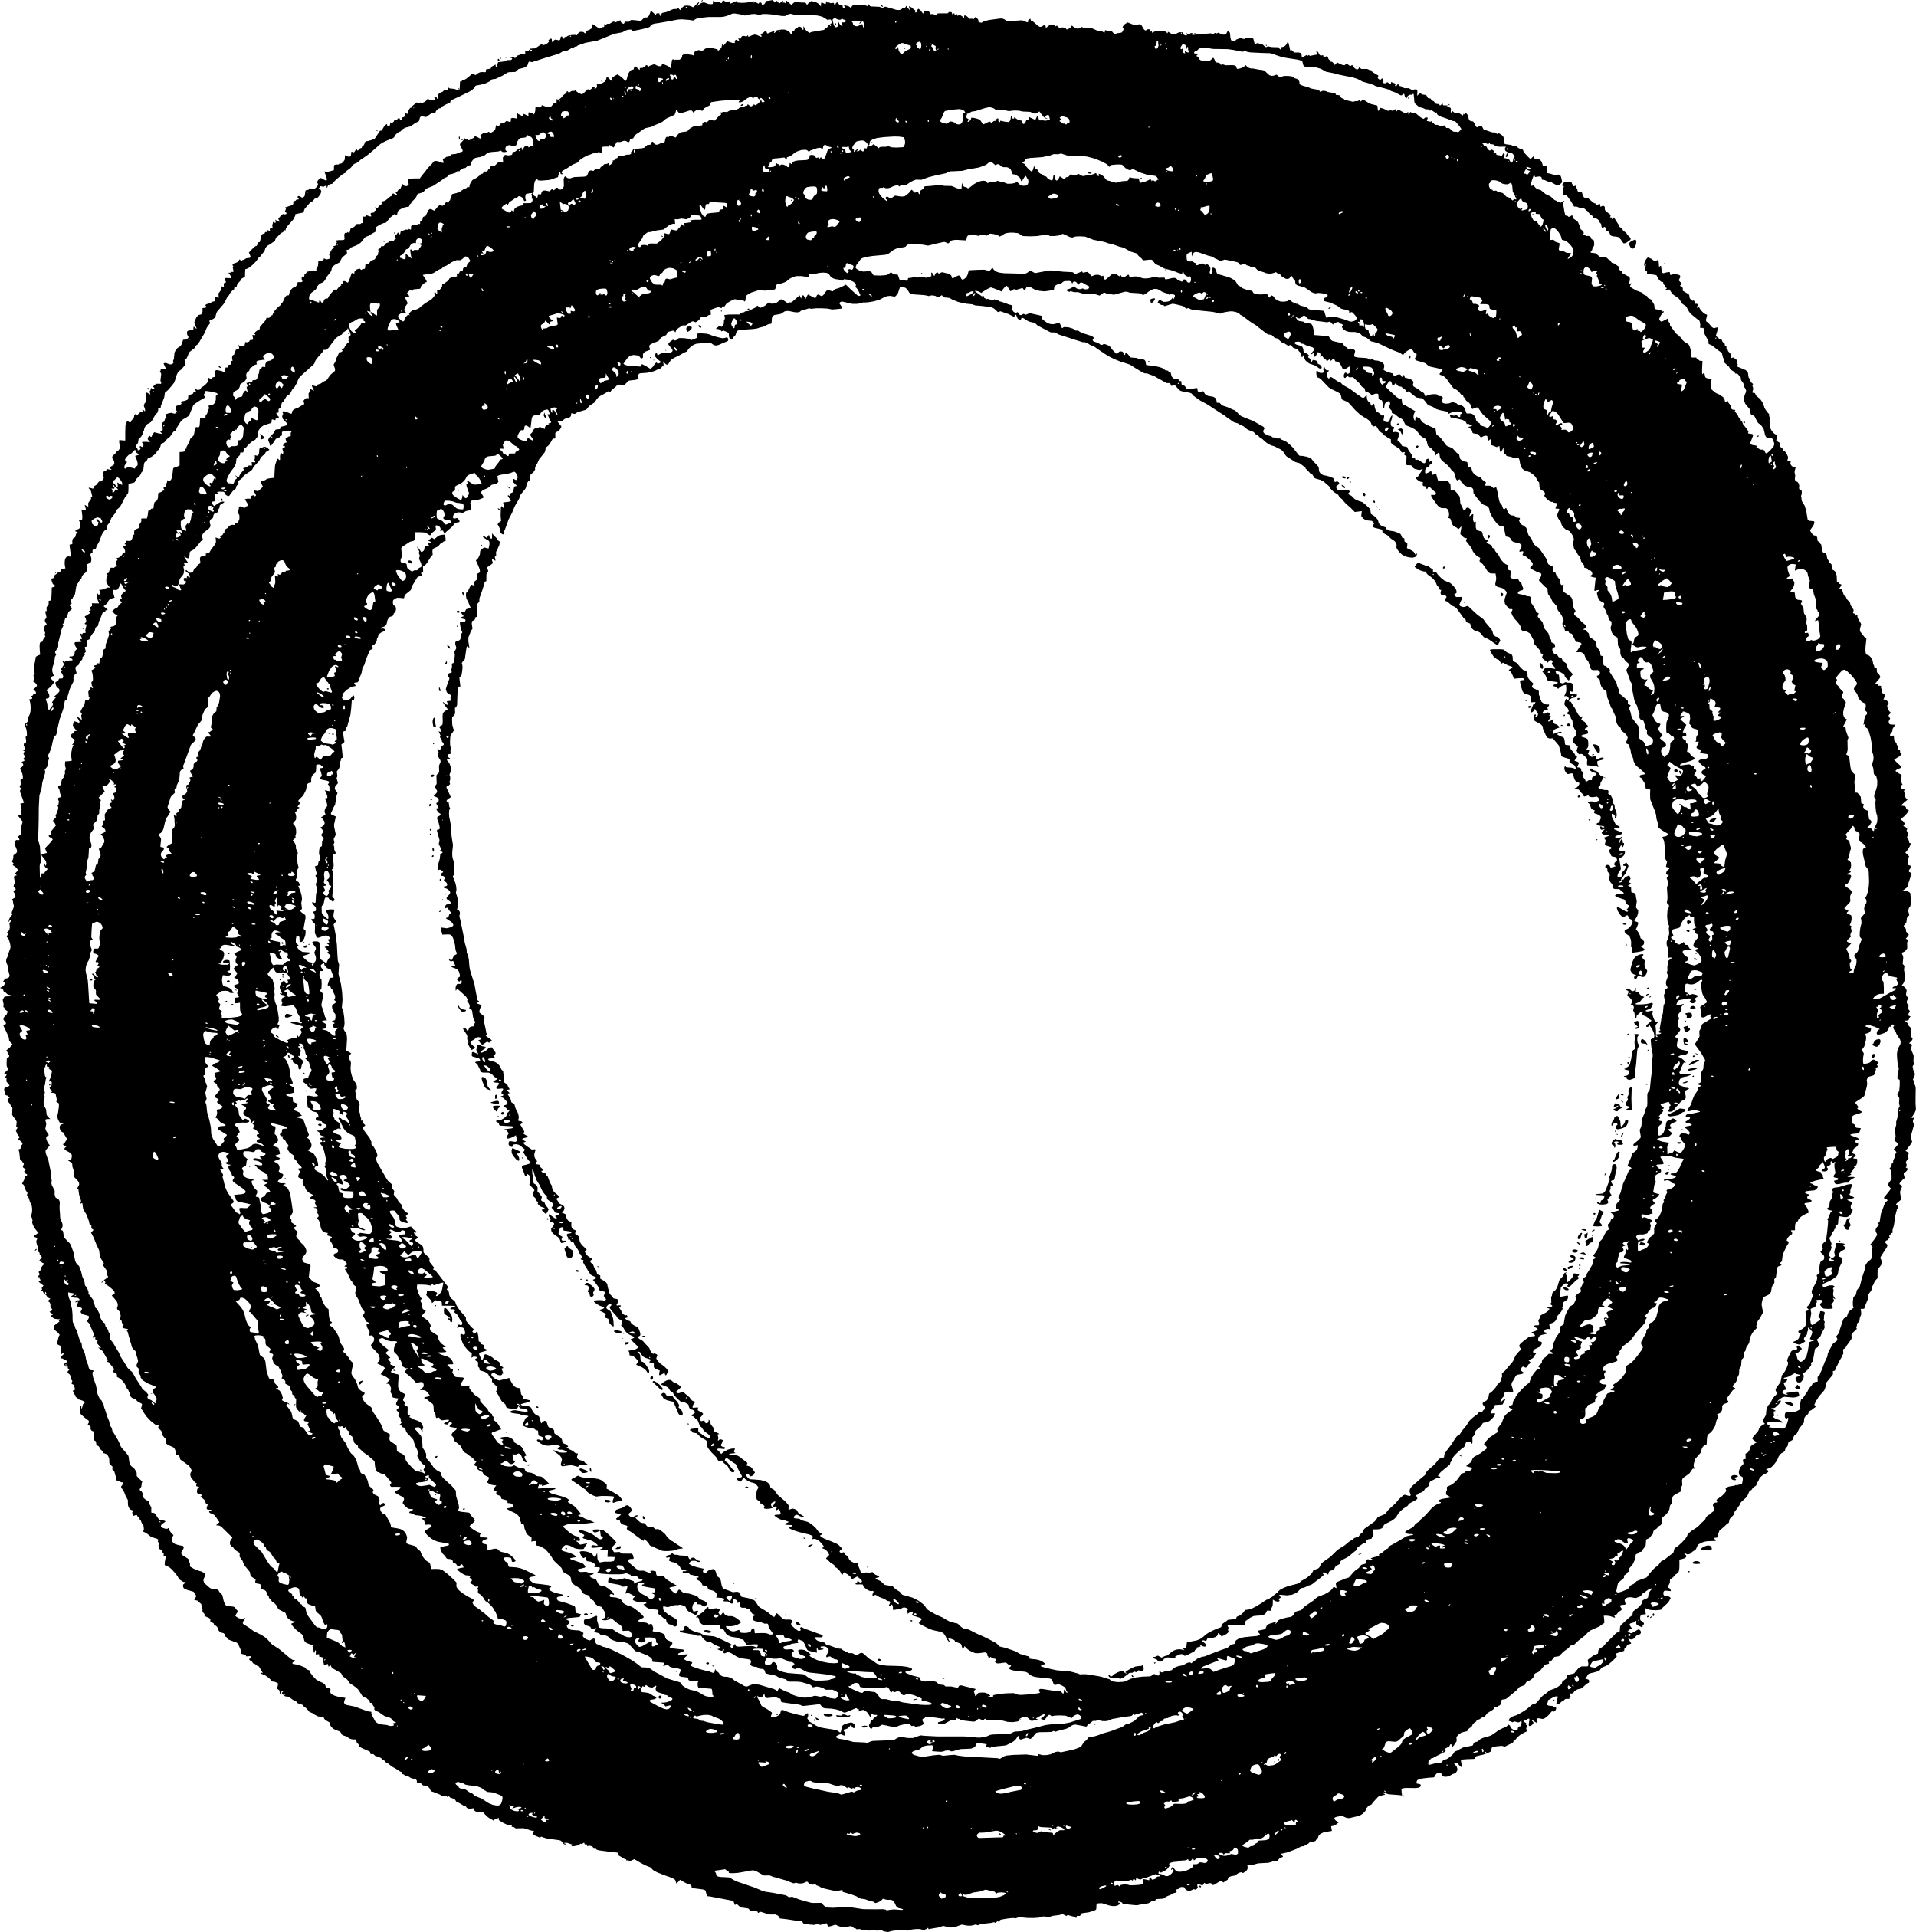 Circle brush png. Scribble transparent onlygfx